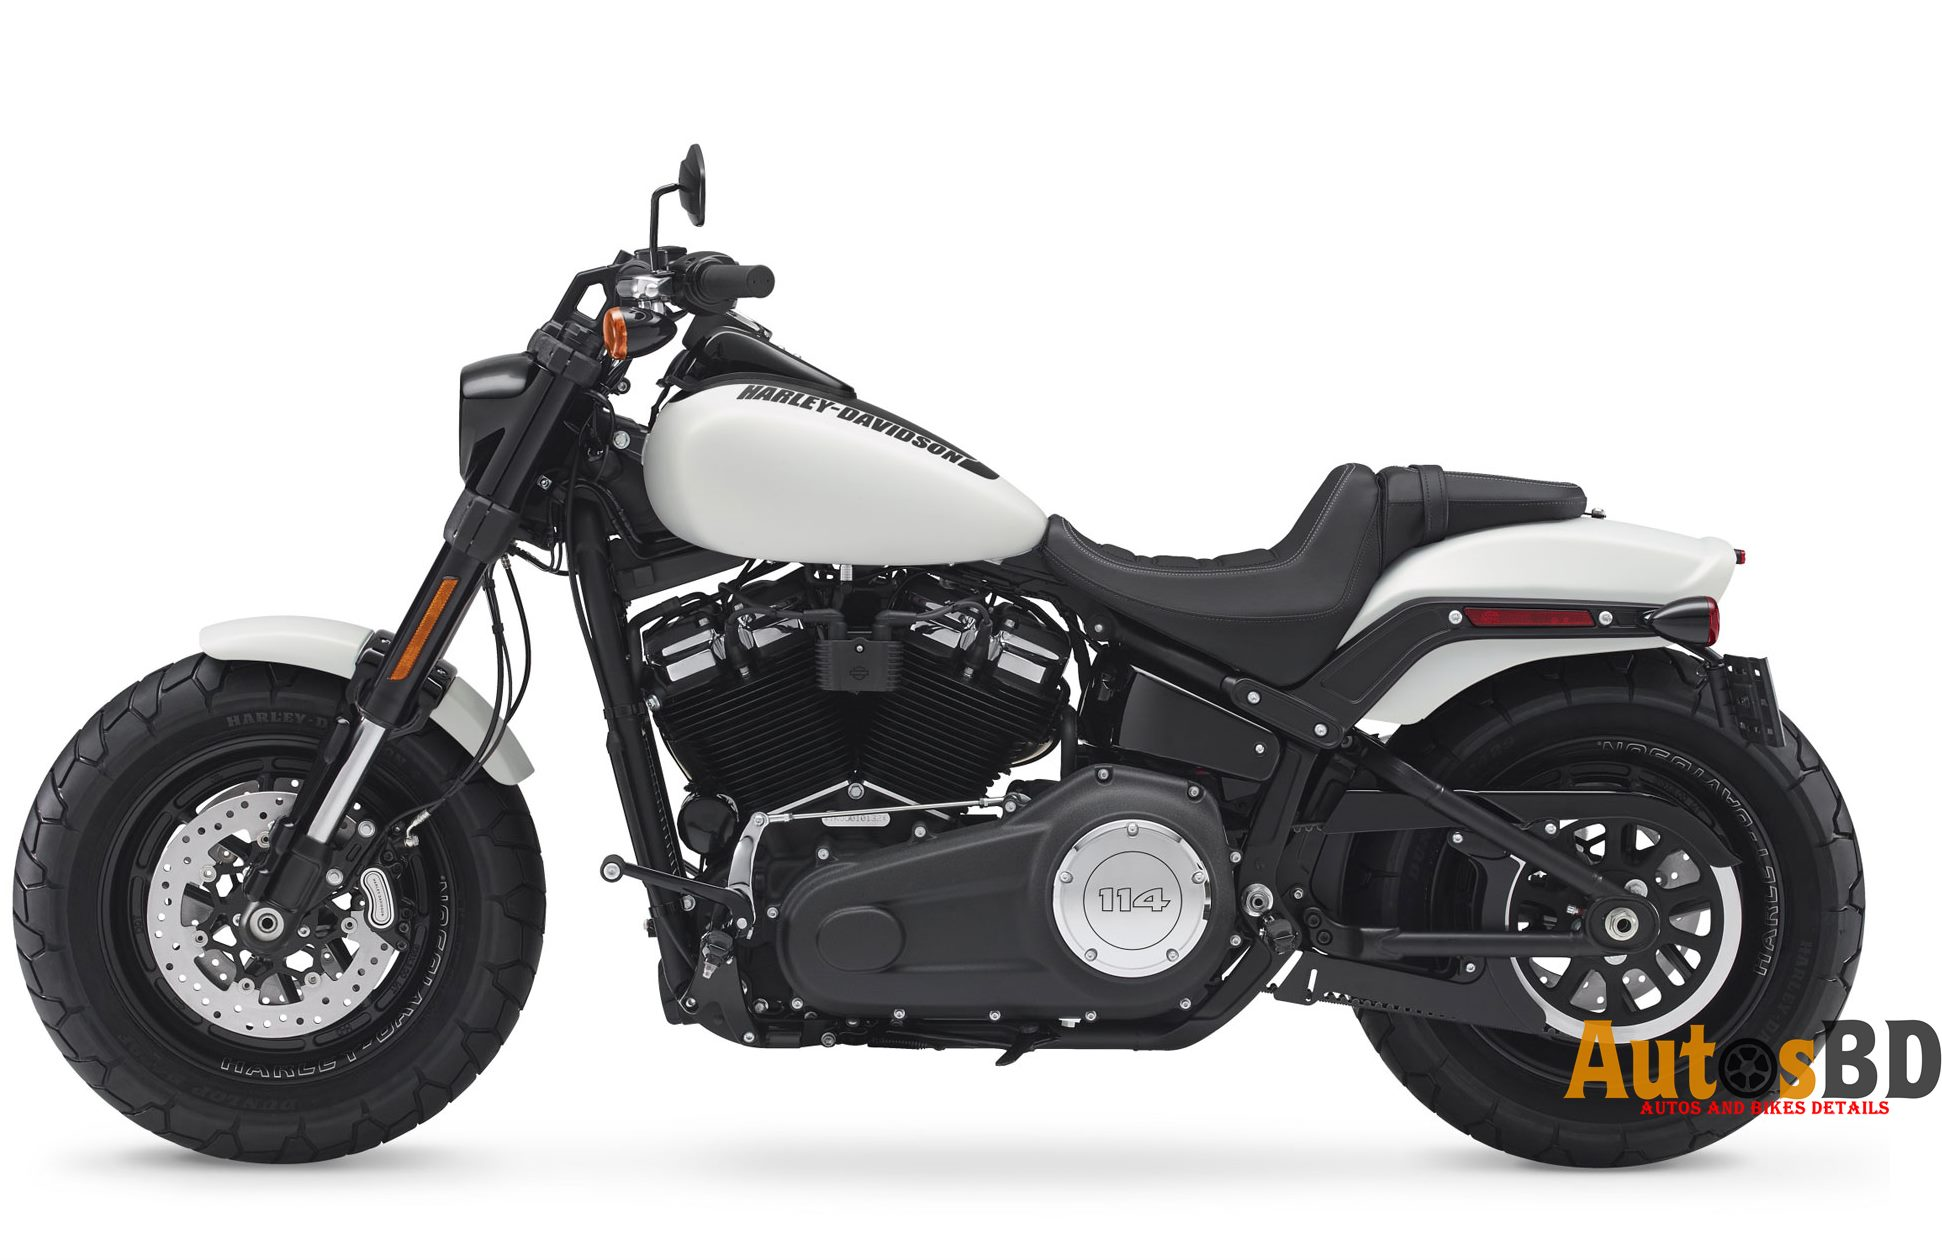 Harley Davidson Fat Bob Motorcycle Specification